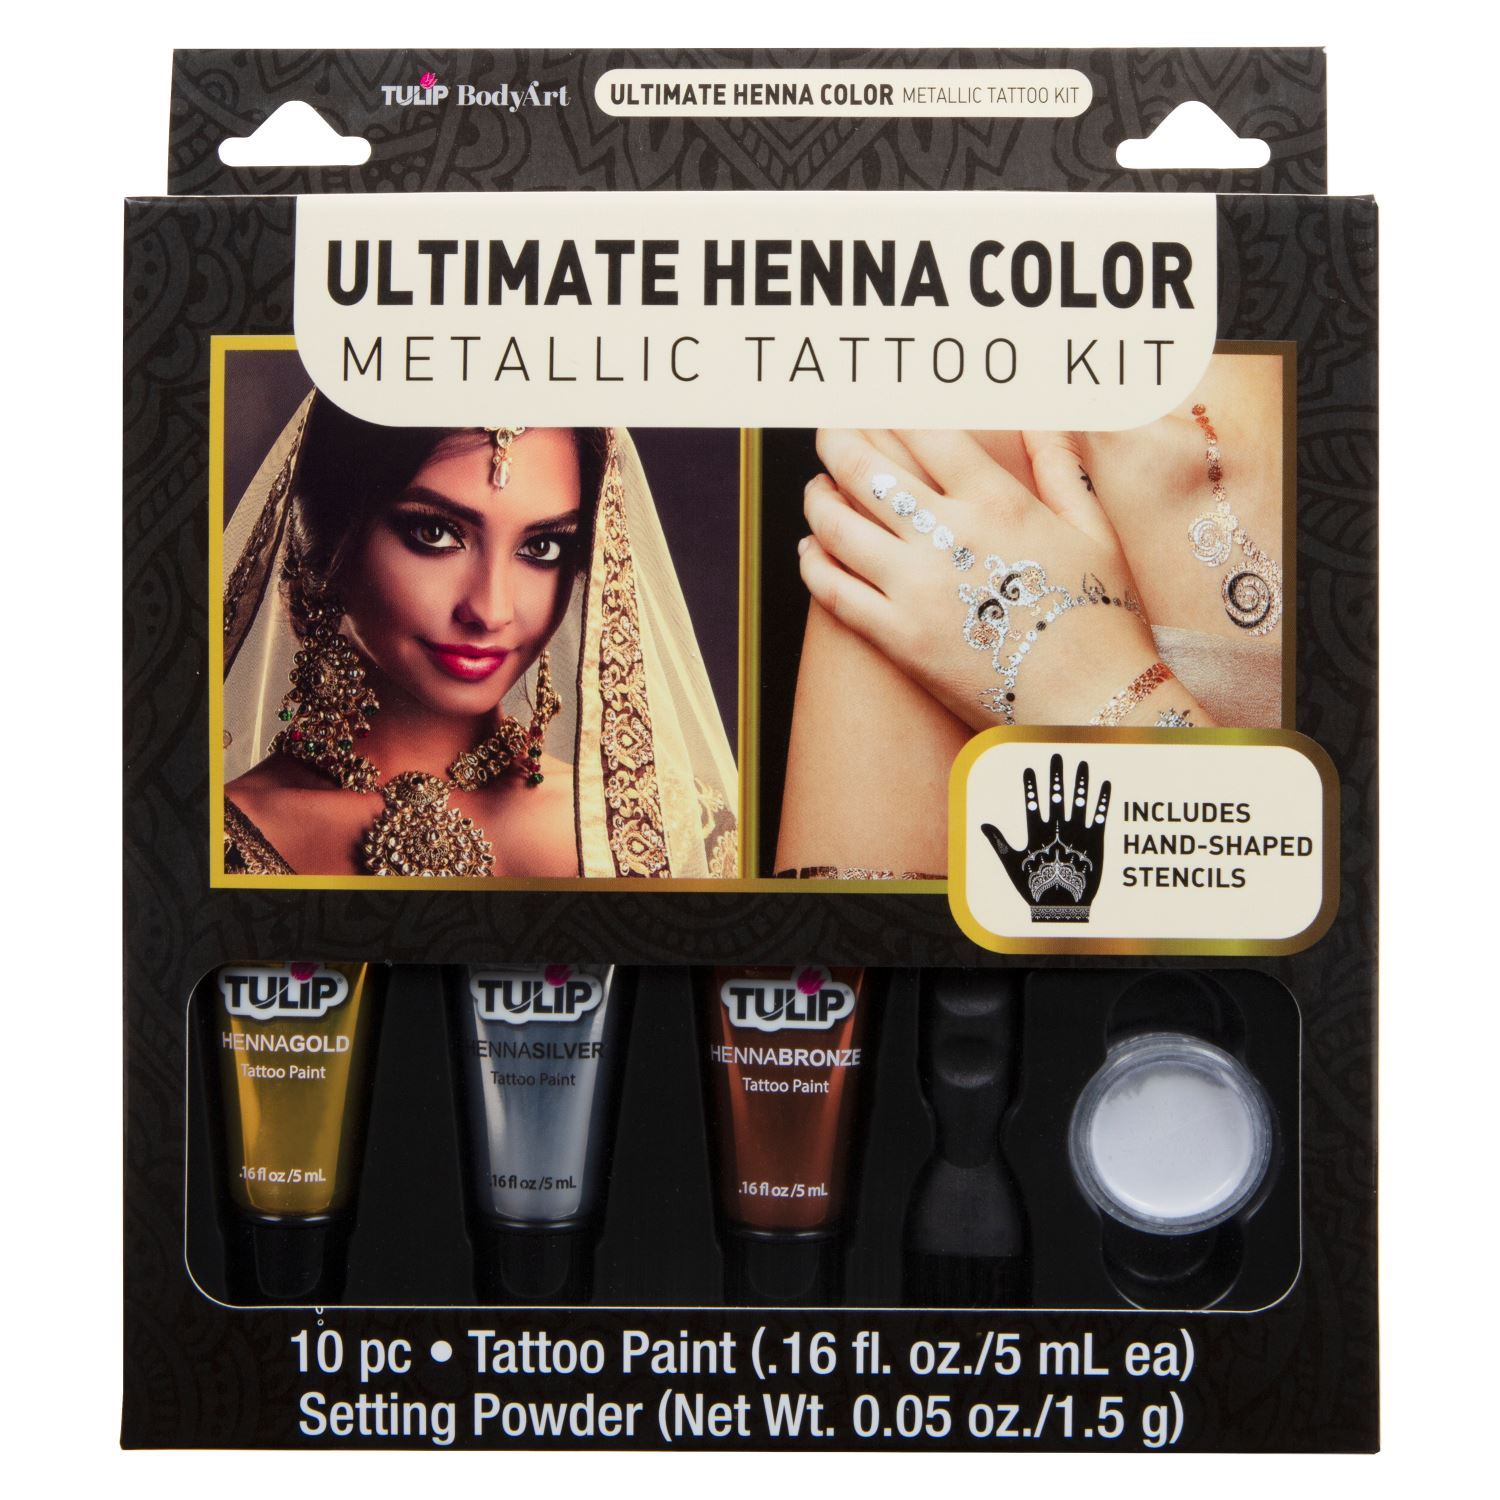 46585 Body Art Ultimate Henna Color Metallic Tattoo Kit  Front of Package